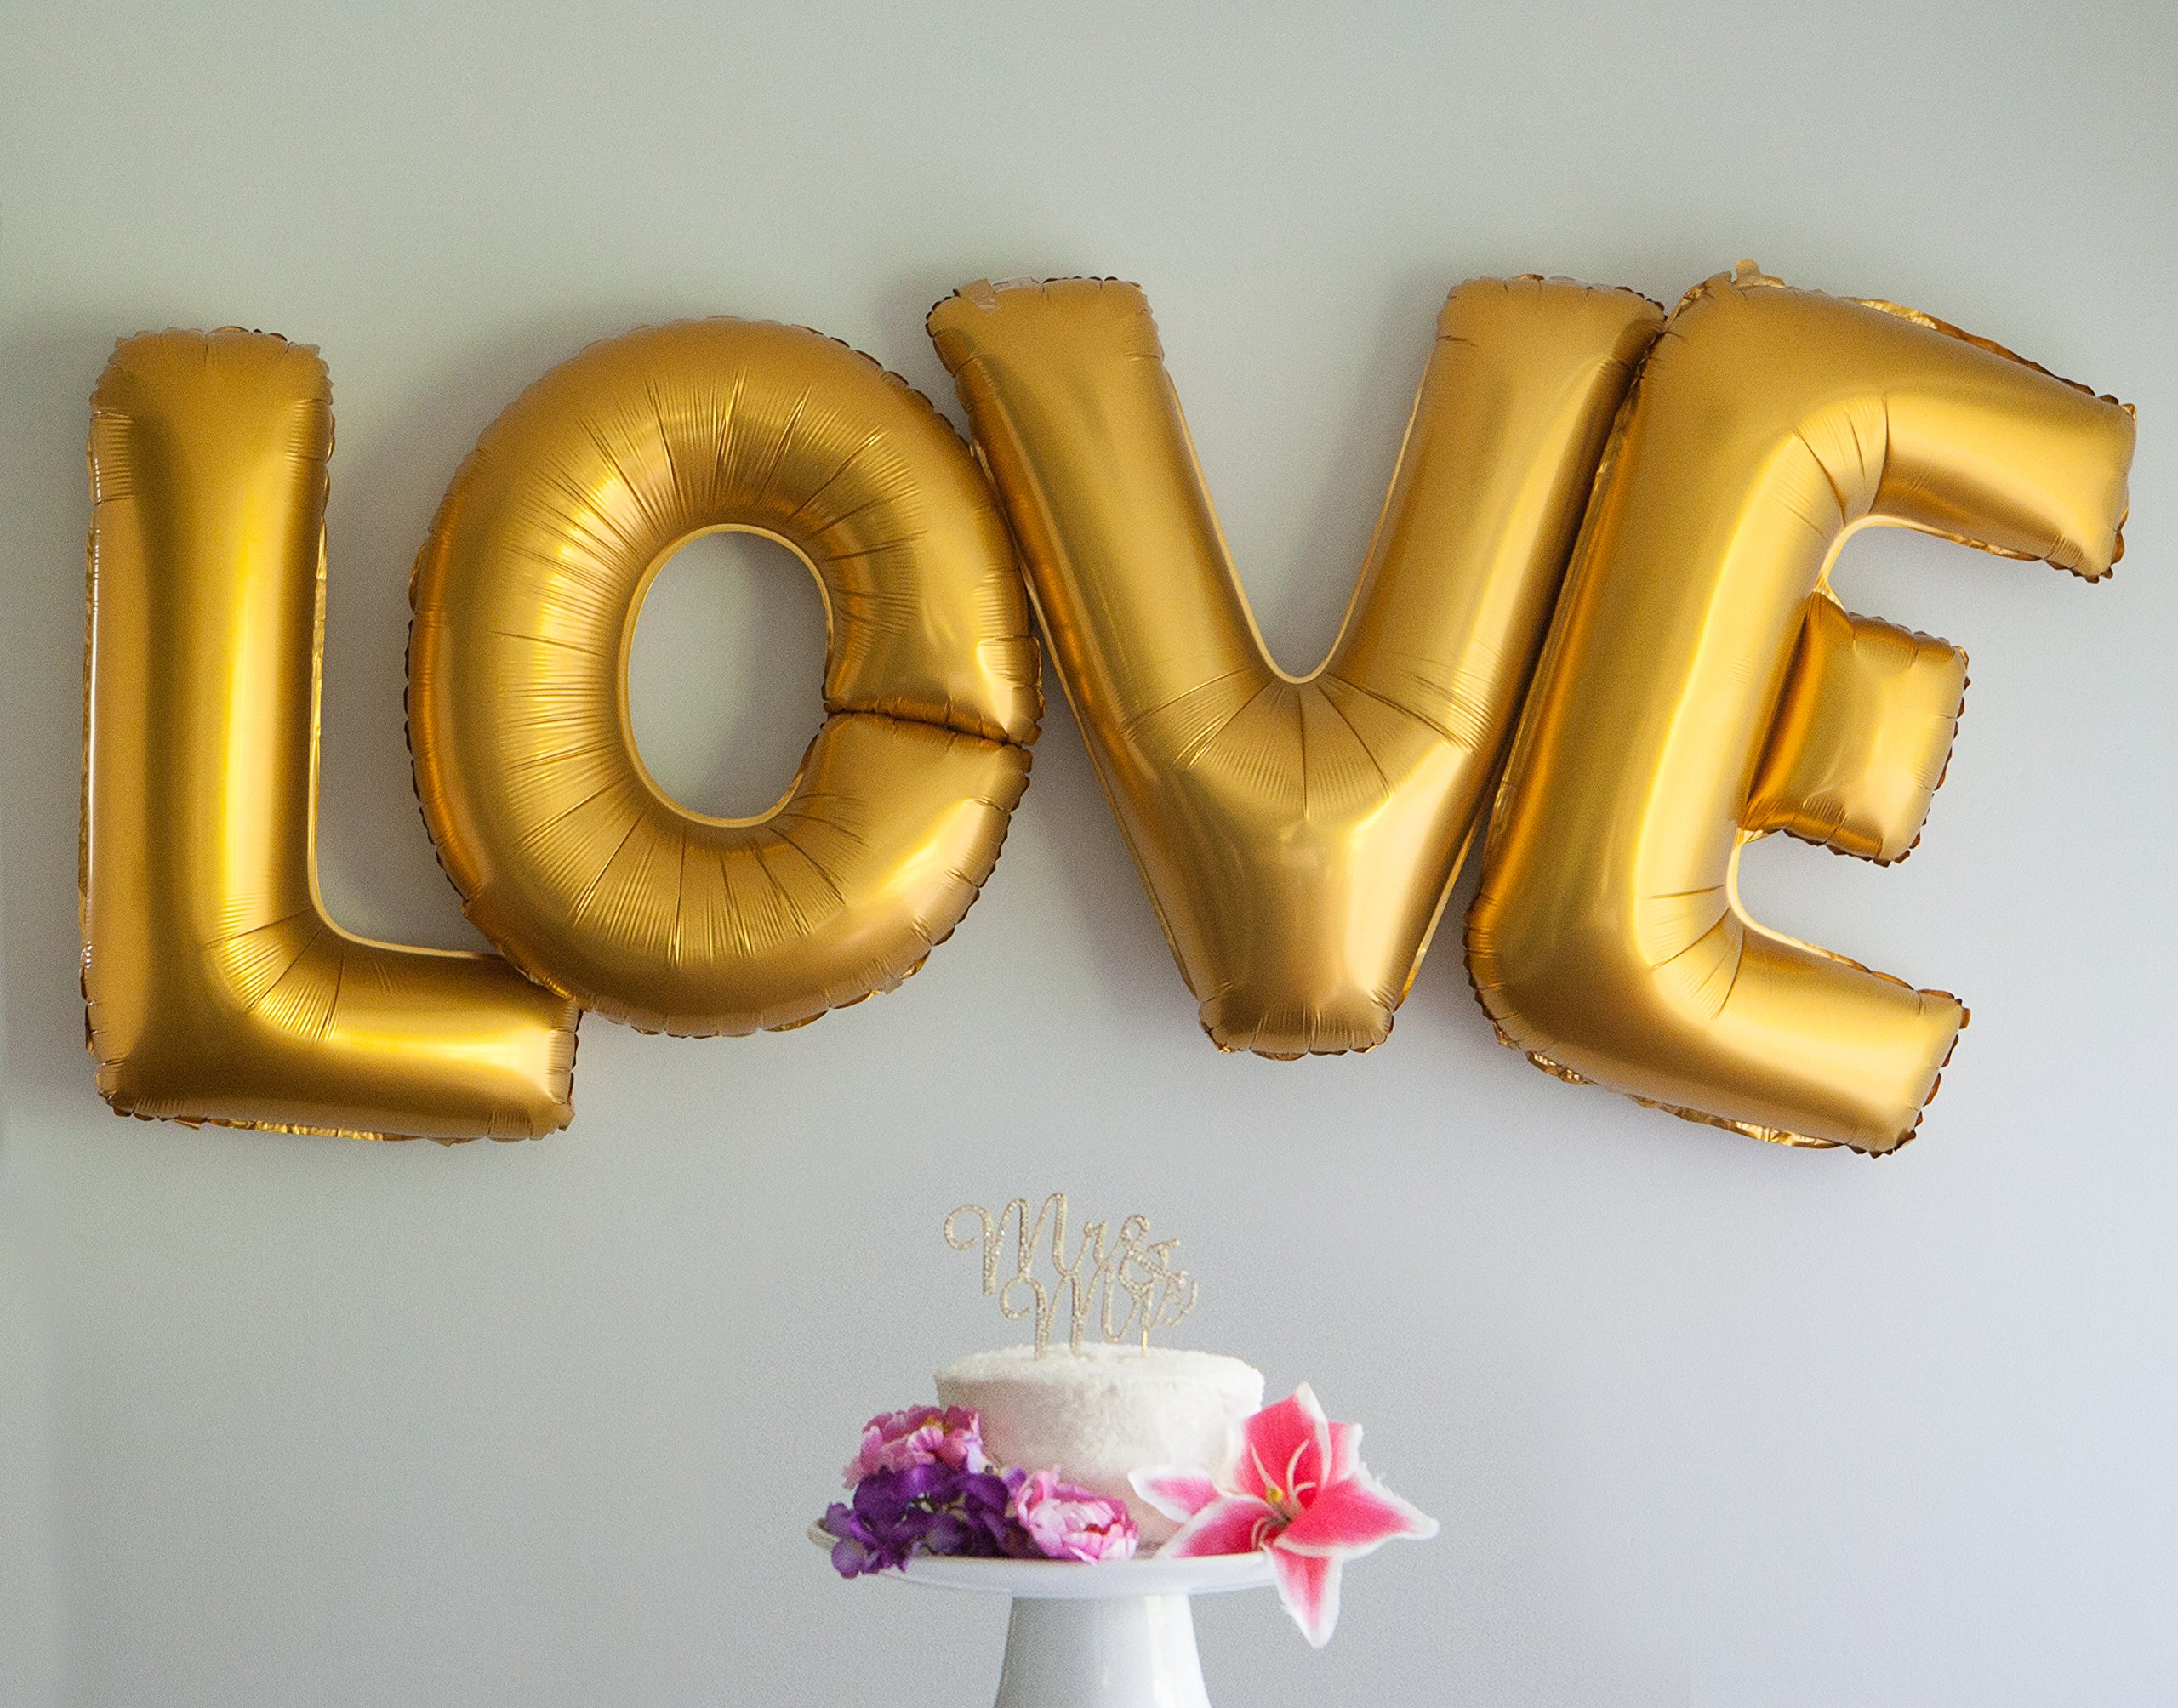 Ella Celebration Love Letters Gold Balloons 40 Inch Extra Large Letter Wedding Party Decoration (Gold)